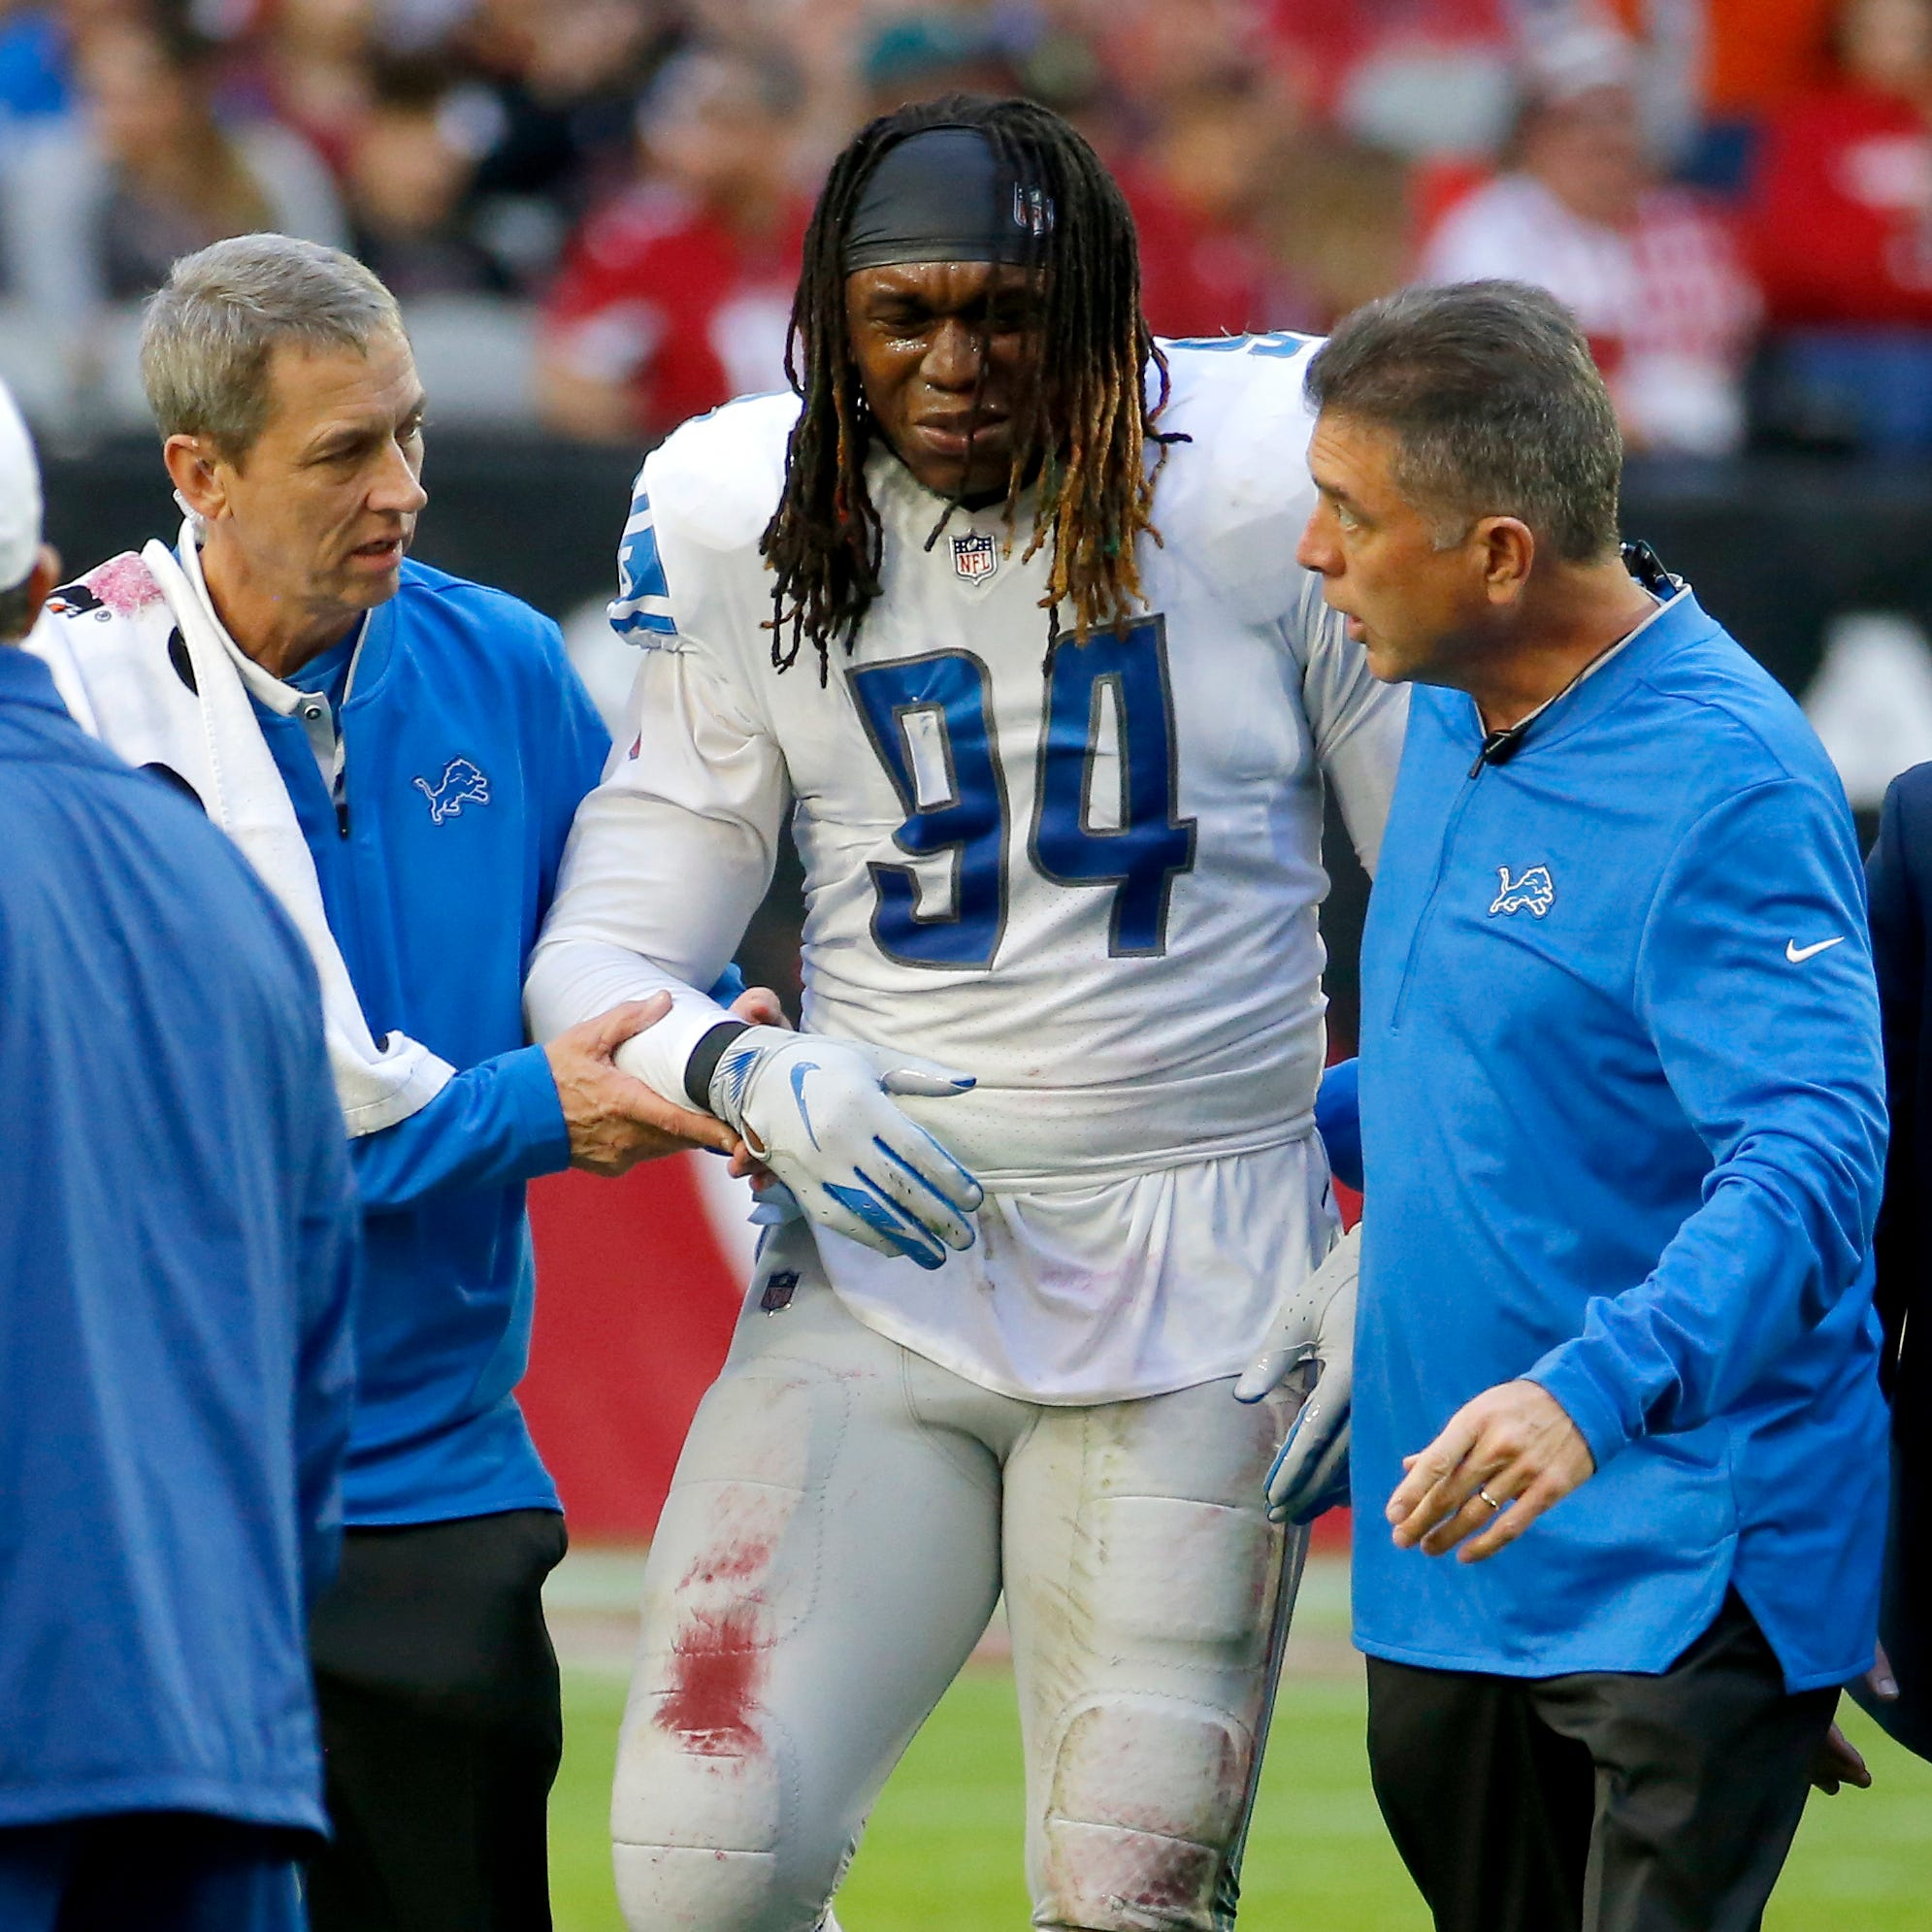 Four Downs: Injuries derail Ziggy Ansah's potential with Lions